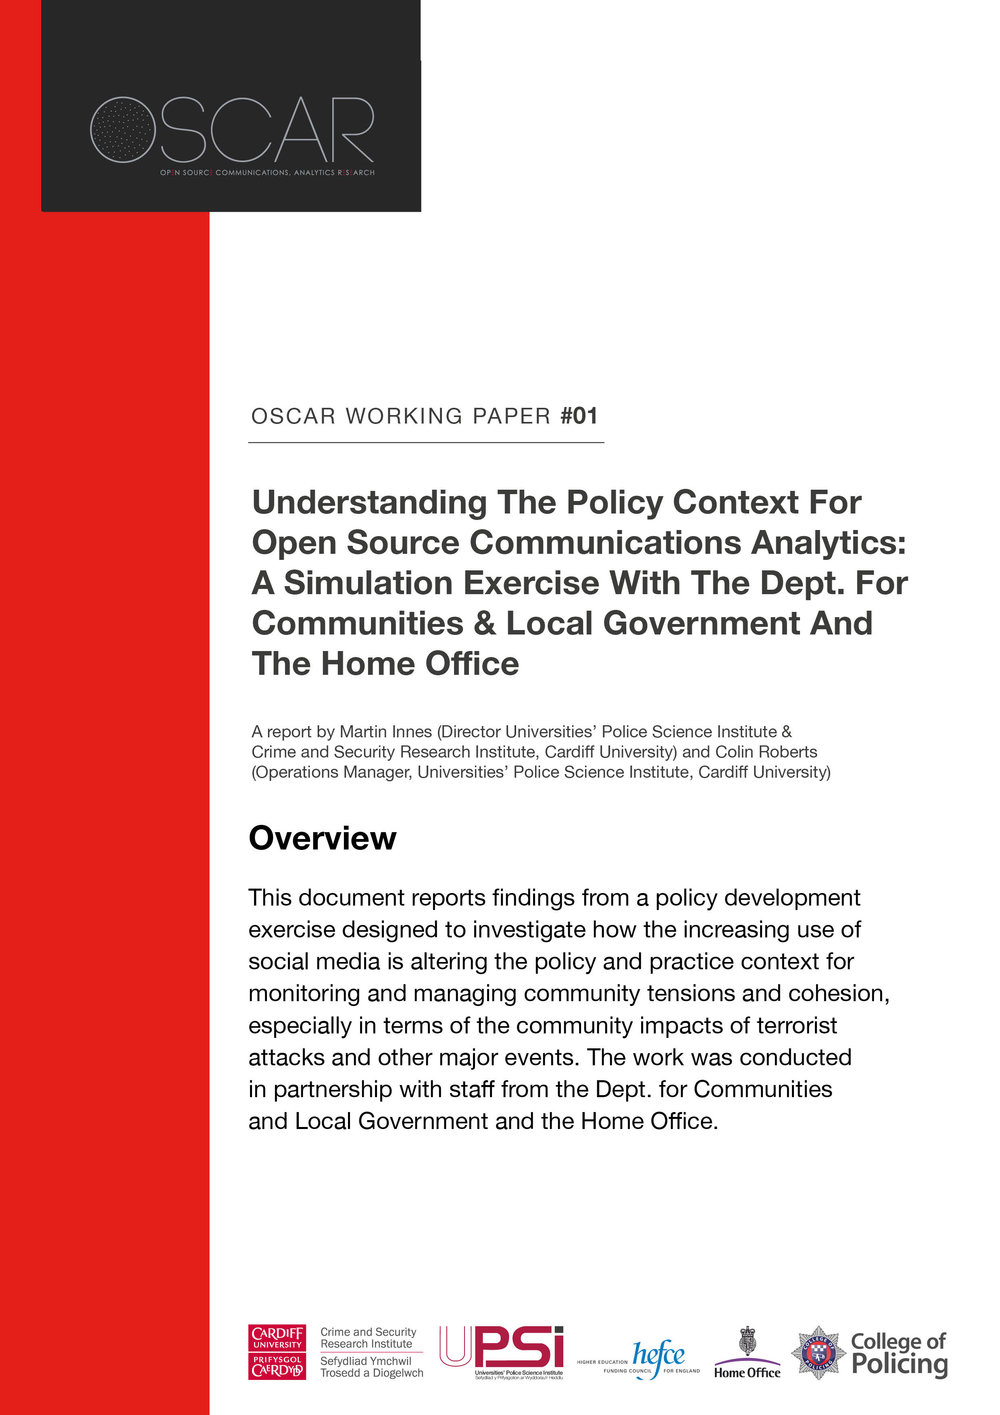 OSCAR Working Paper 1: Understanding The Policy Context For Open Source Communications Analytics: A Simulation Exercise With The Dept. For Communities & Local Government And The Home Office -